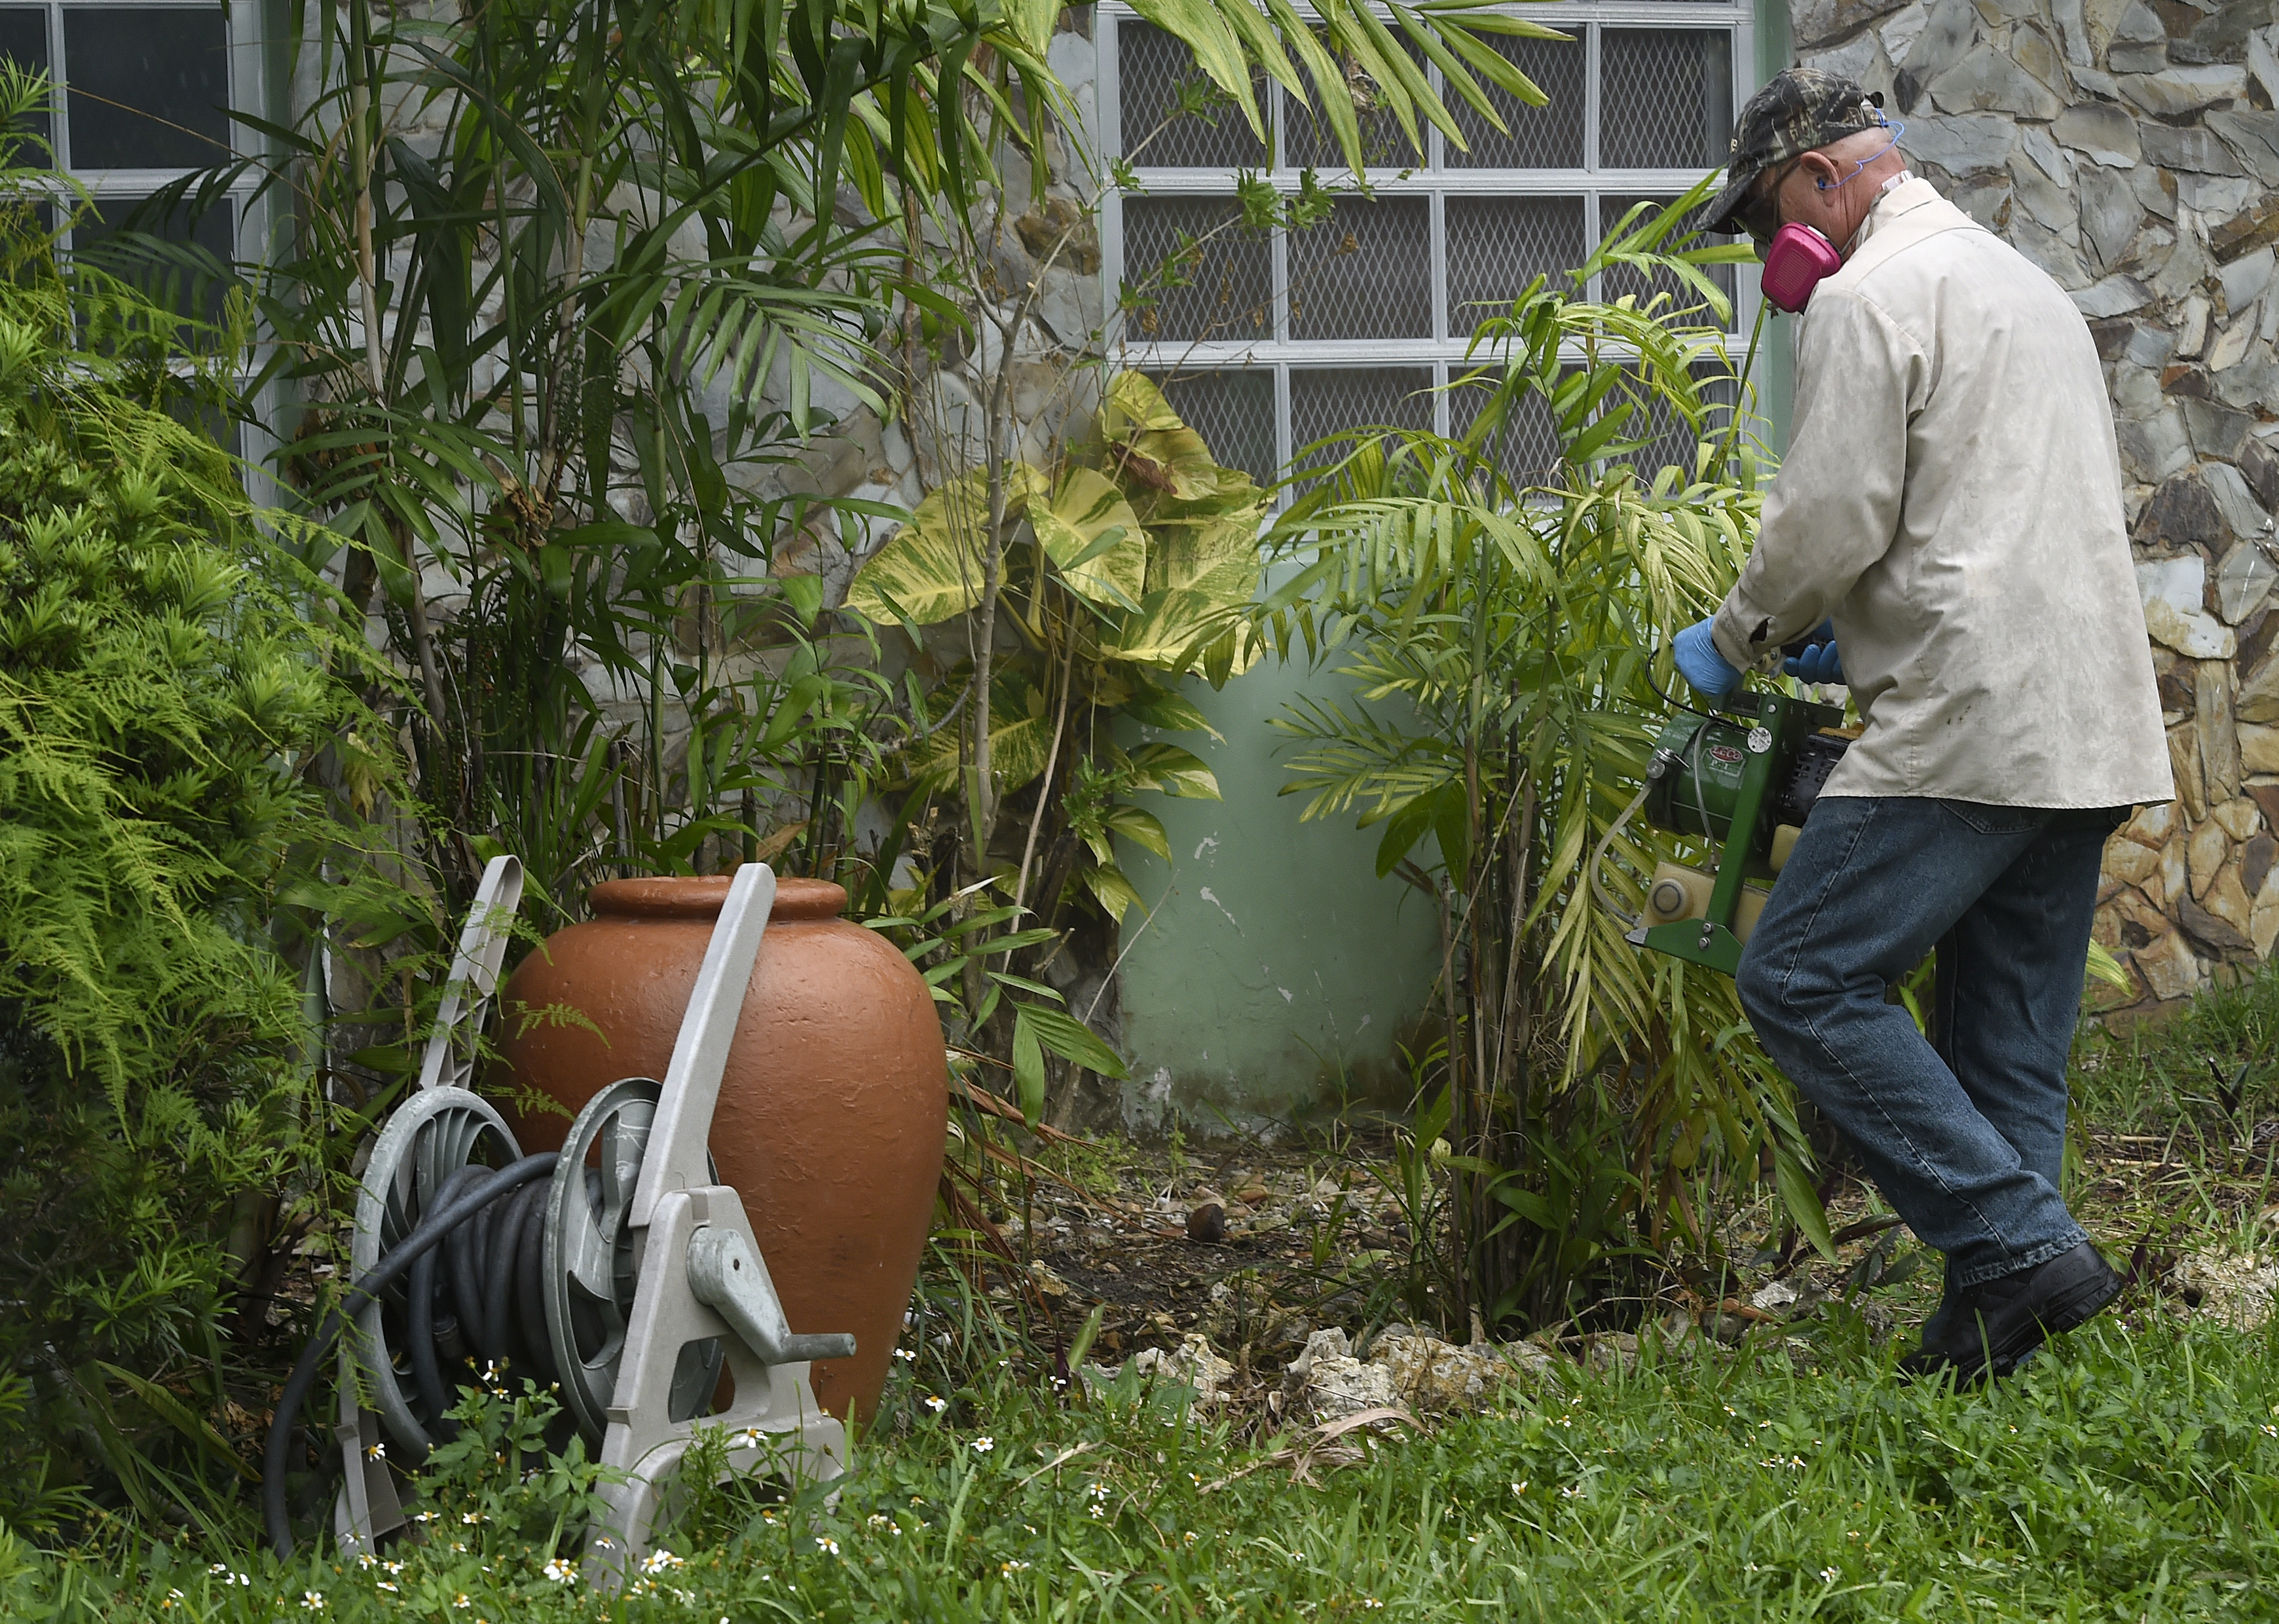 Miami-Dade mosquito control worker Carlos Vargas sprays to eradicate the Aedes aegypti mosquito larvae at a home in Miami, June 8, 2016.